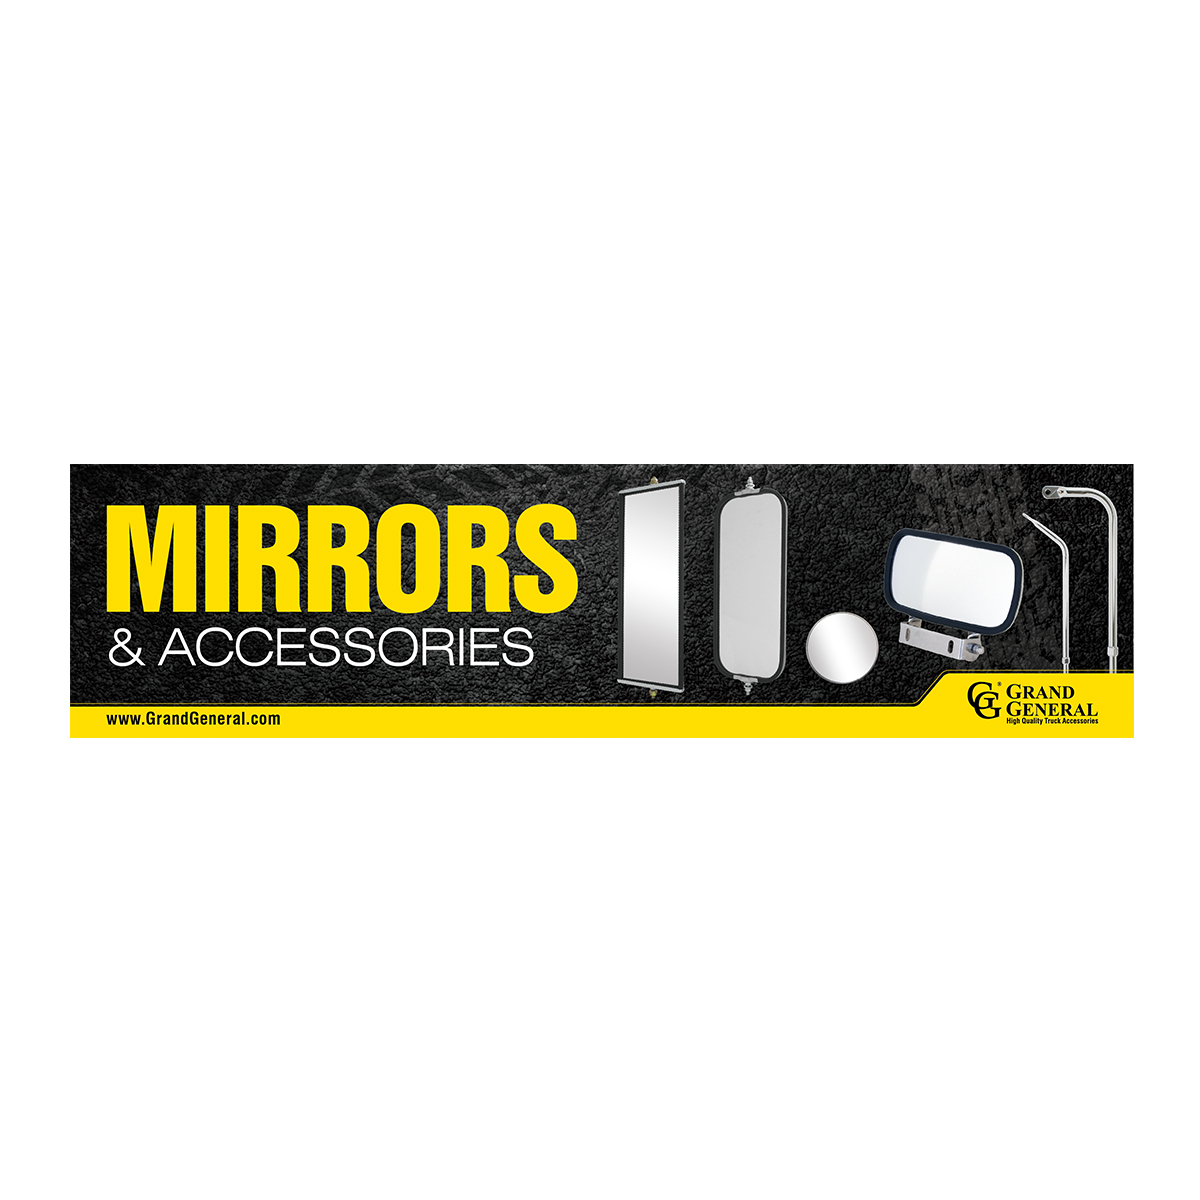 Mirror Product Display Sign